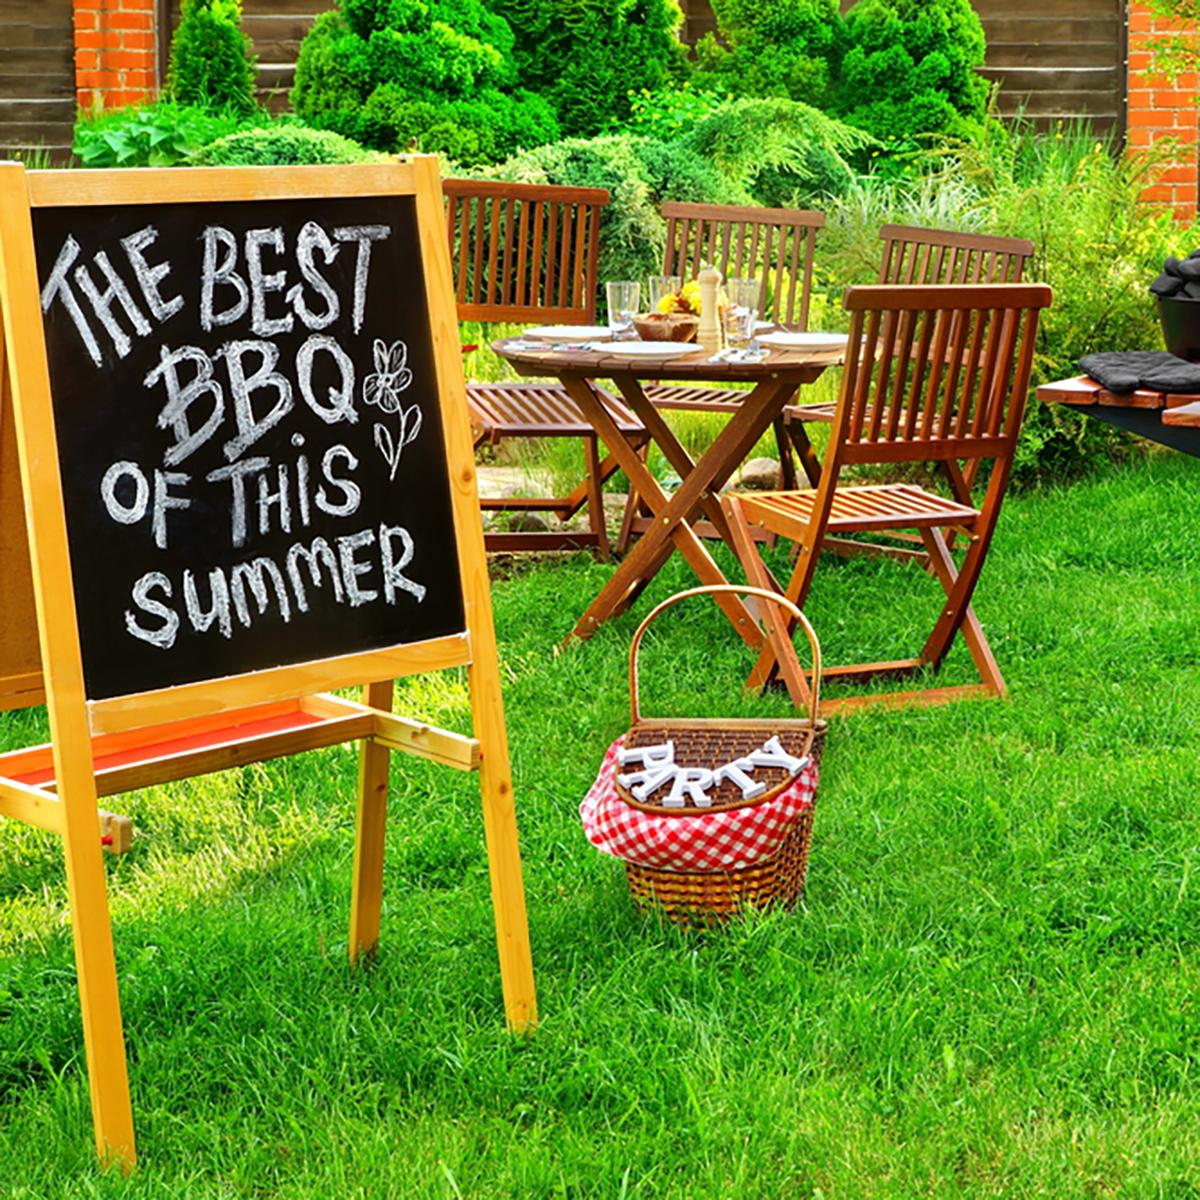 11 Insanely Smart Ideas For Your Backyard Party Taste Of Home with Backyard Party Ideas